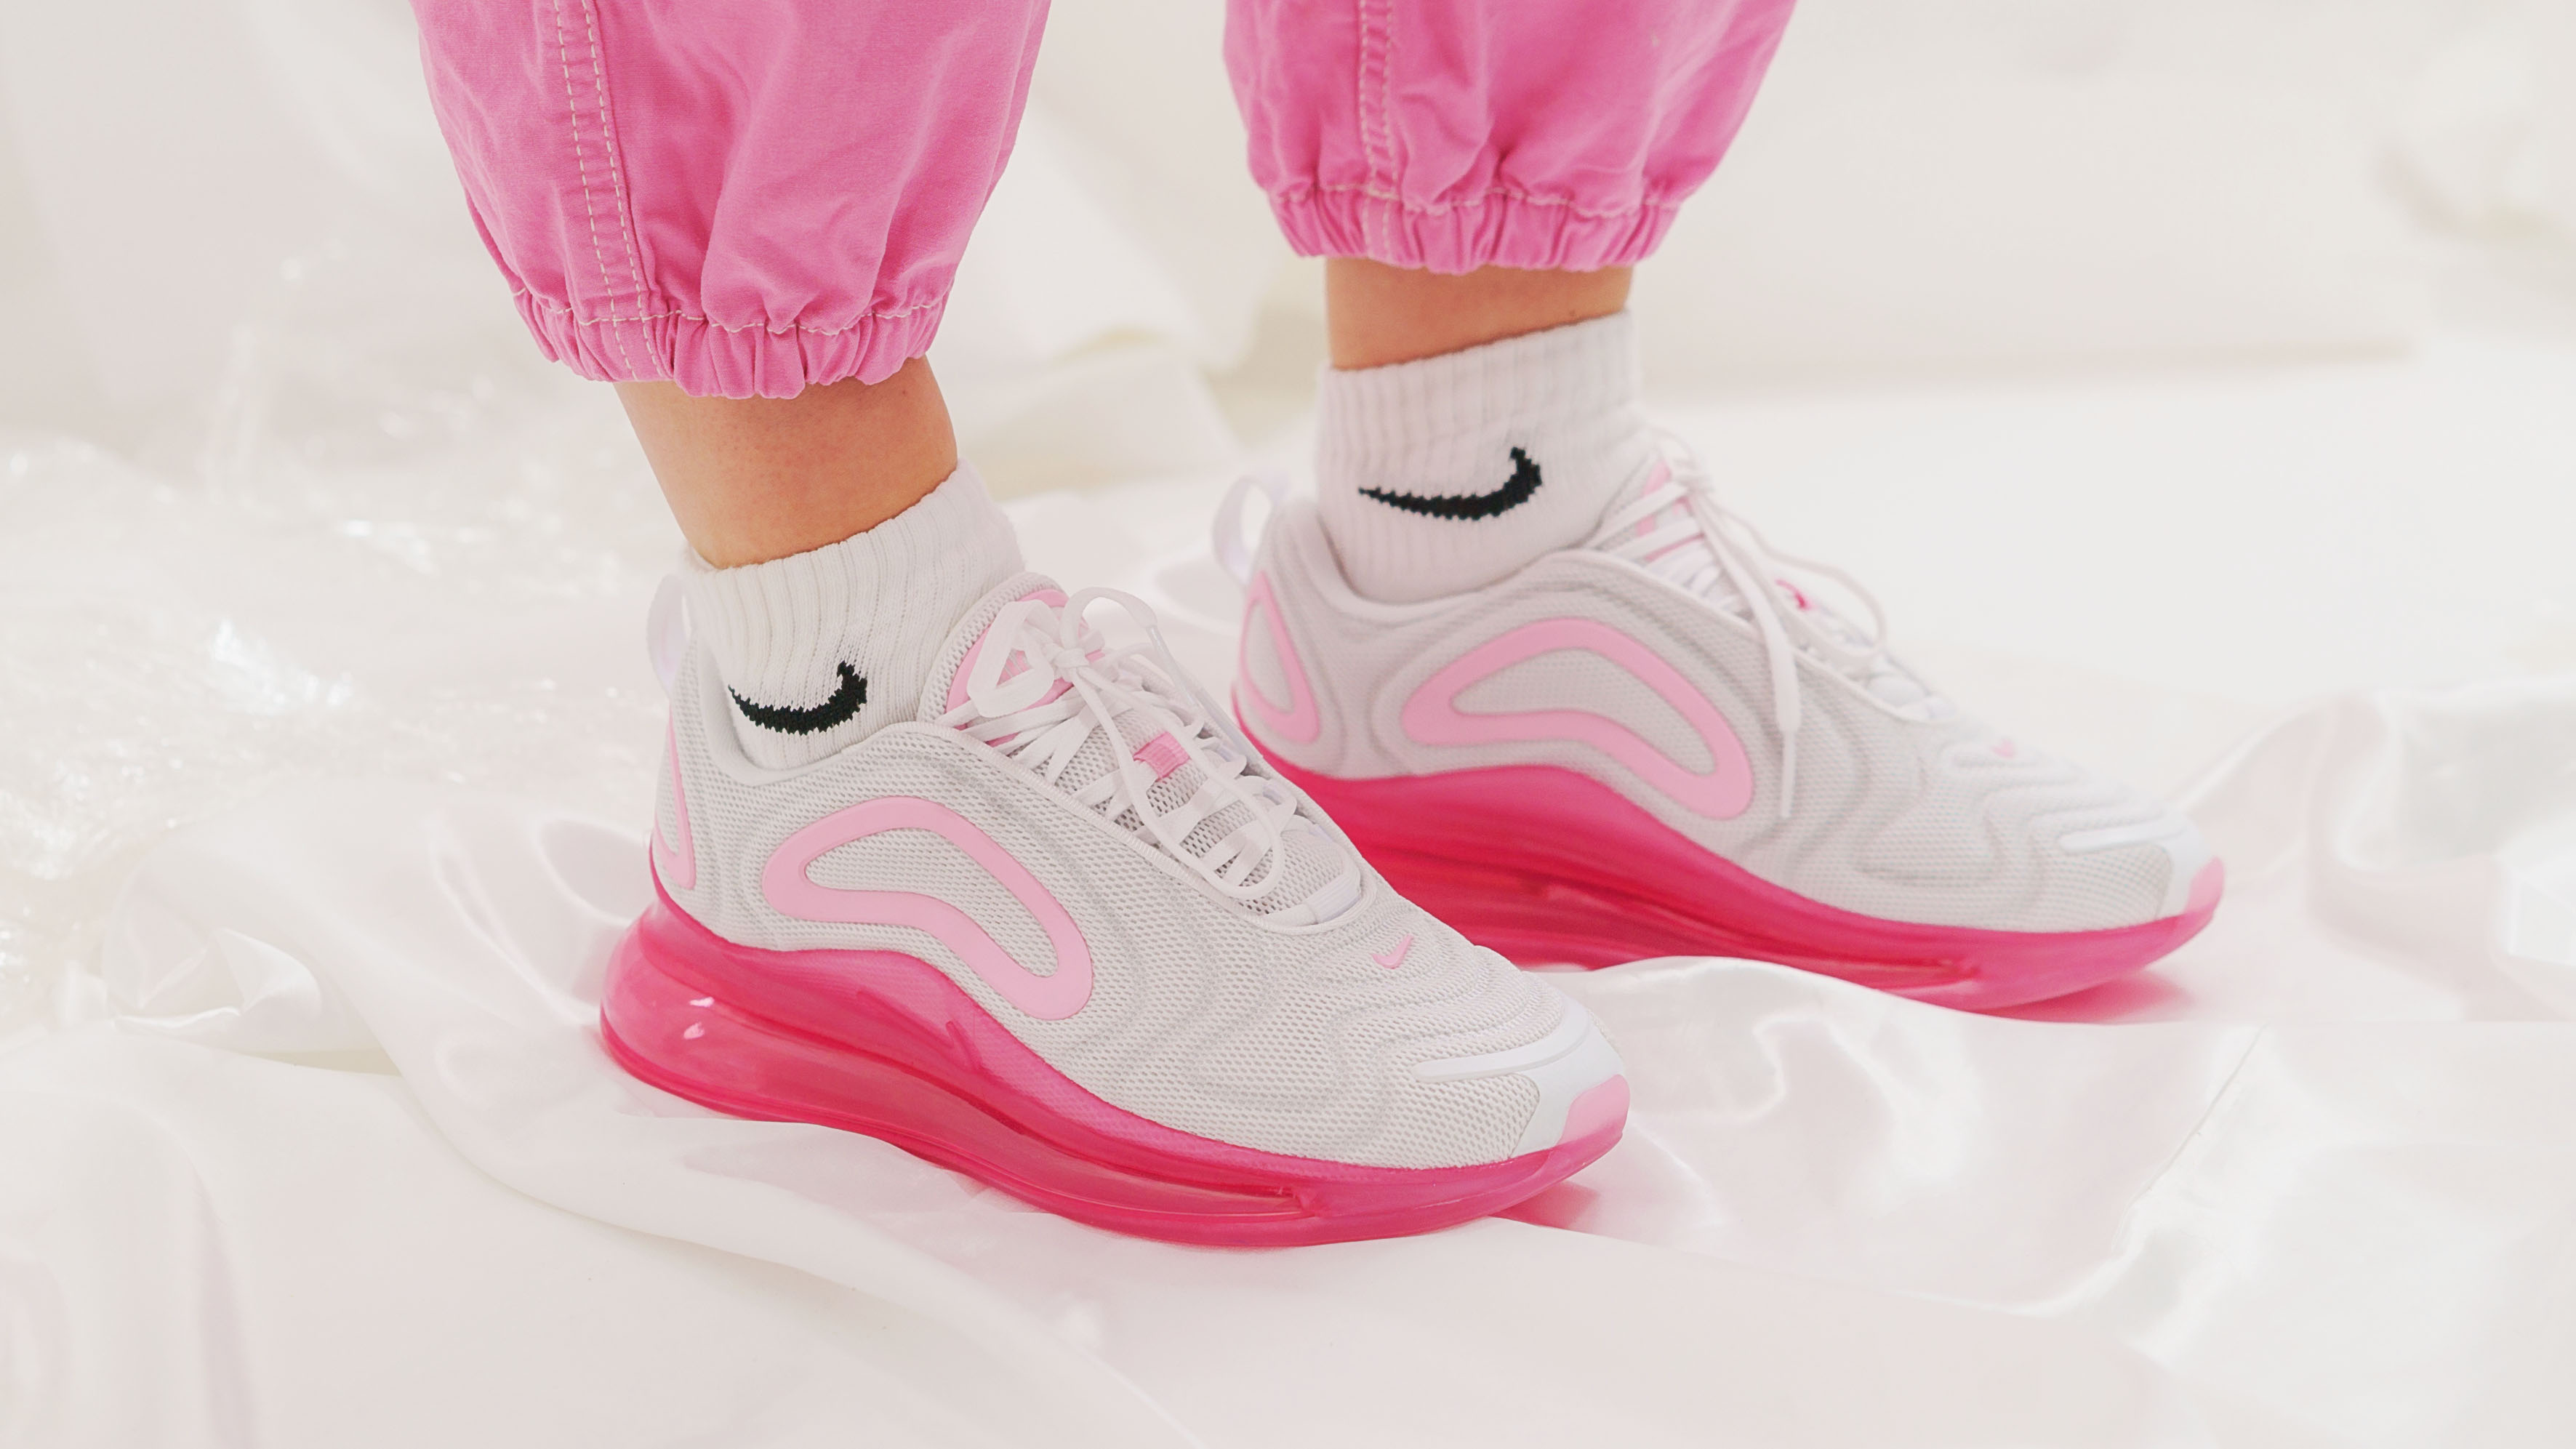 703155e999 Styling: Nike's Air Max 720, VaporMax 3.0 and Air Max Dia Laser Fuchsia    Style Guides   The Sole Womens